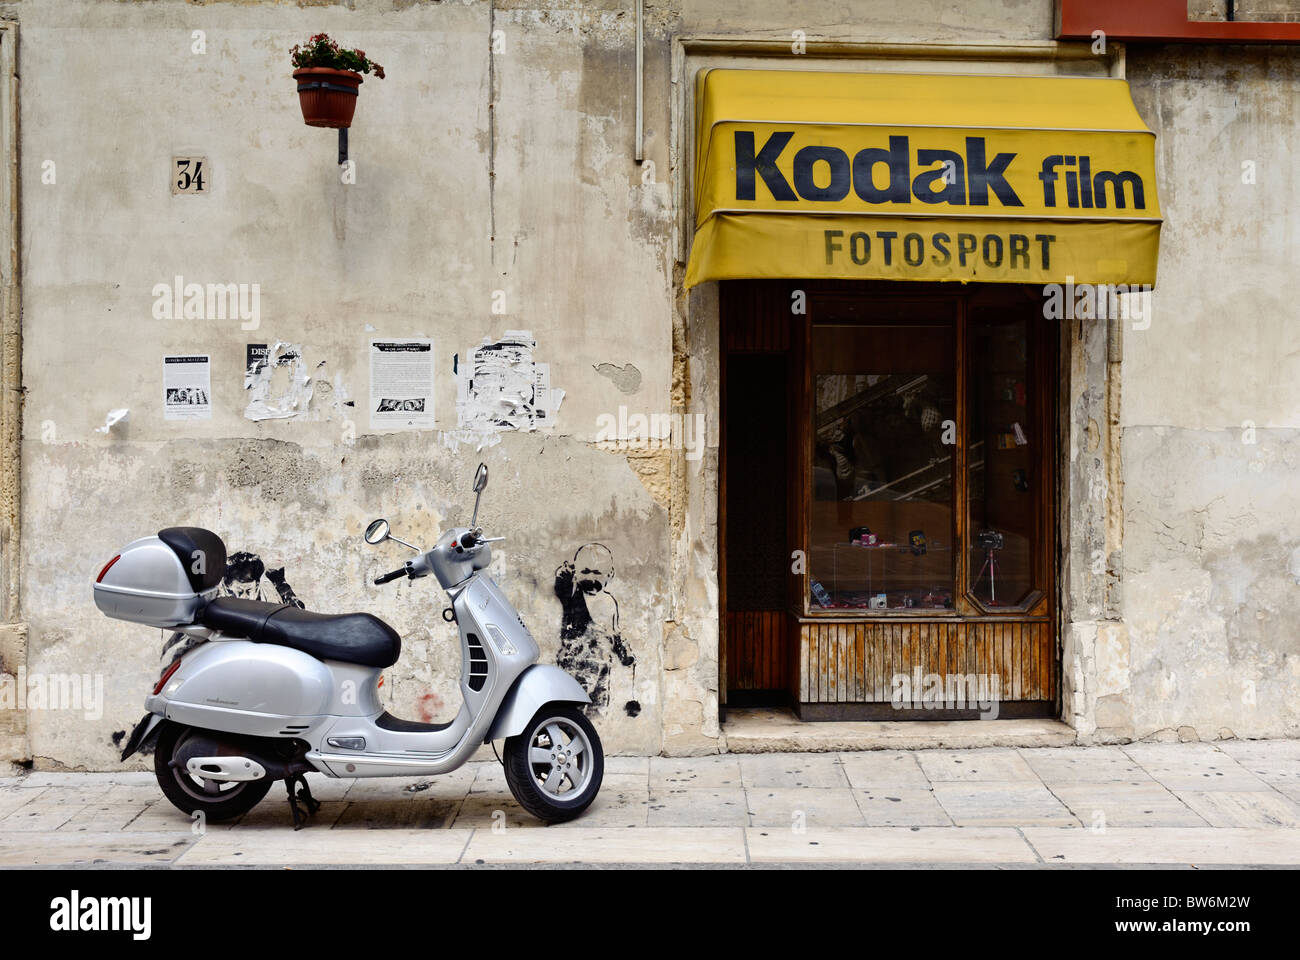 Traditional photographic equipment shop in a street of Lecce, Italy - Stock Image